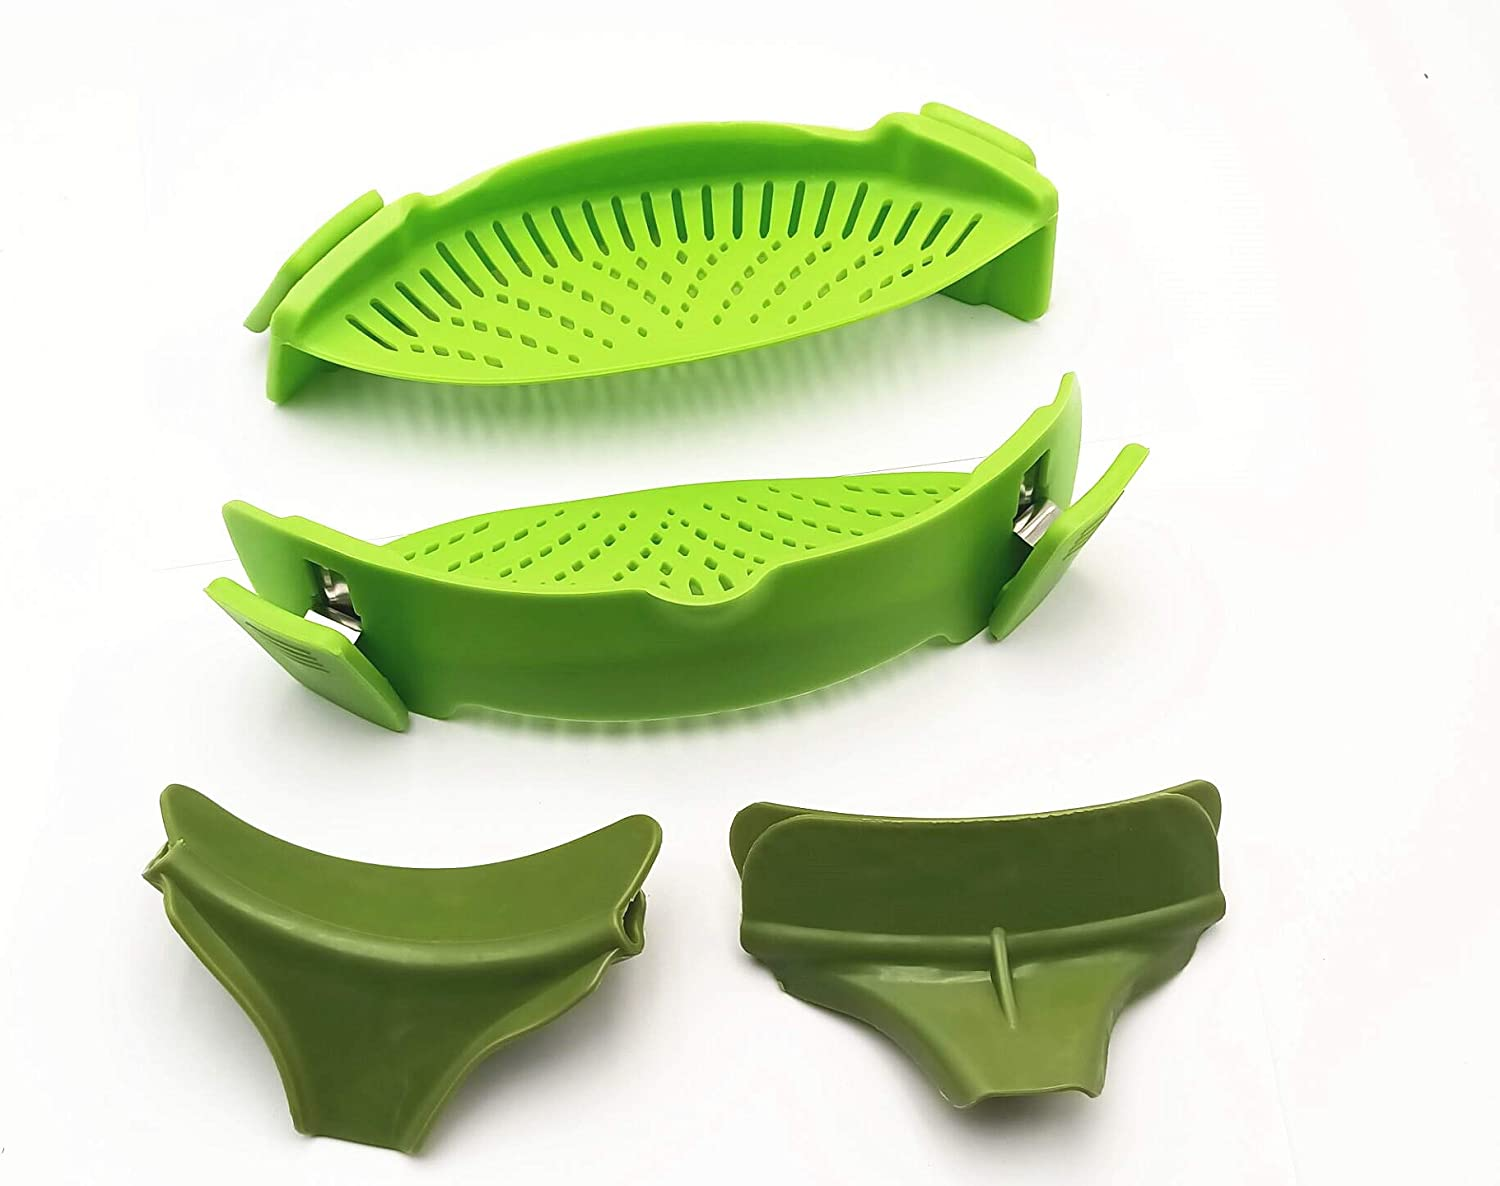 2 Packs Strain Pan Strainer, Clip-on Silicone Strainer with Slip-On Bowl Pour Spout Free for Draining Food While Cooking or Pouring Liquid, Universal Size Fits Most Pans Pots Bowls (green)